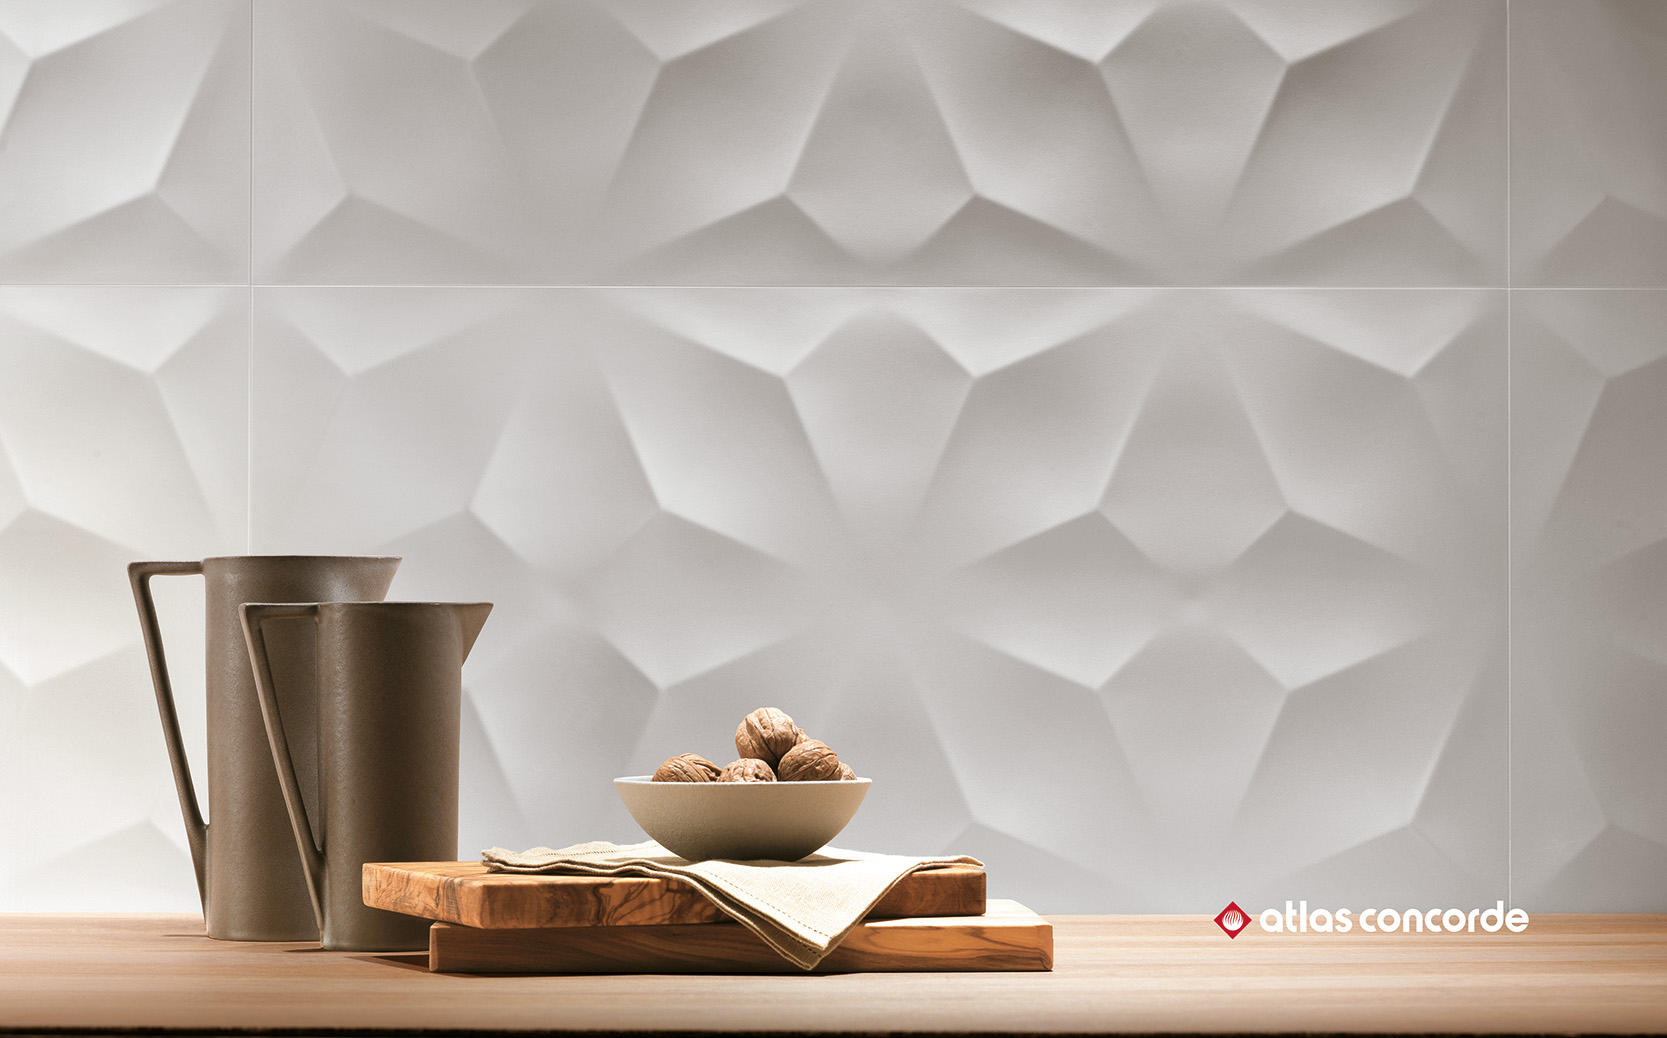 3d Wall Diamond White Ceramic Tiles From Atlas Concorde